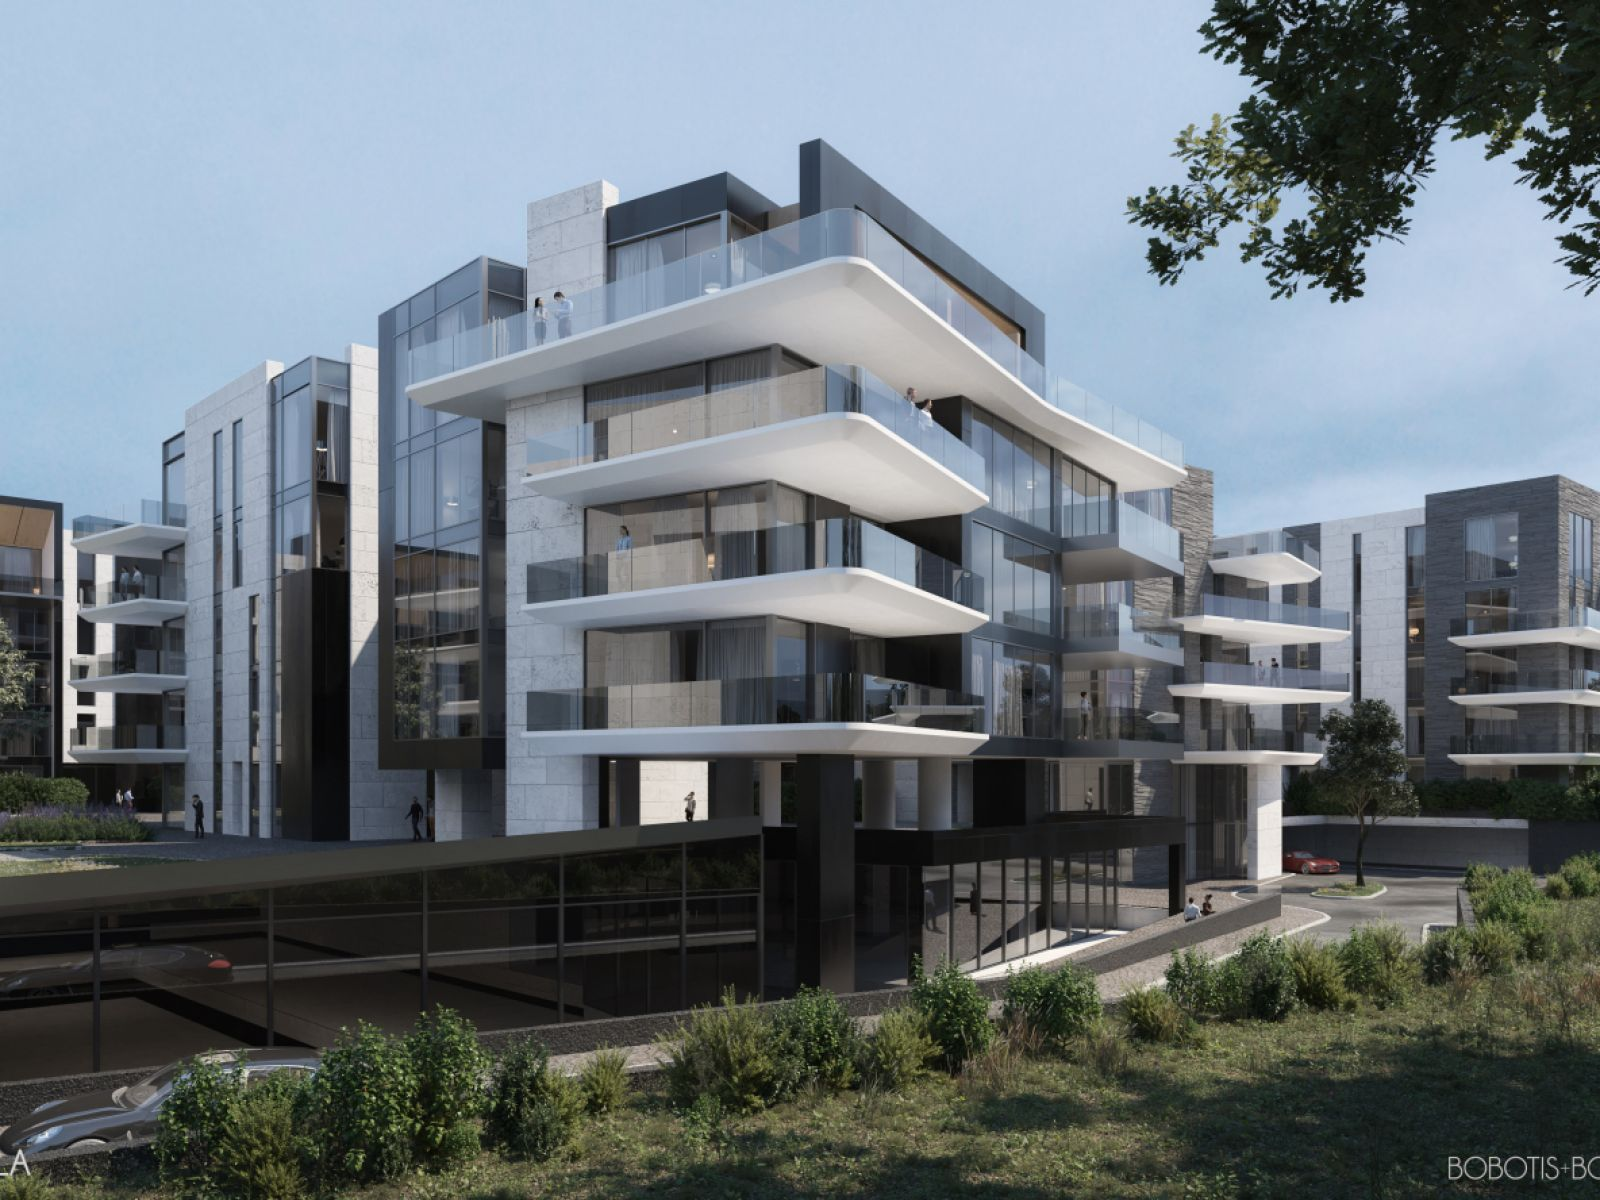 One Peninsula, the only residential club in Bucharest with geothermal heat pumps system, is already over 40% sold